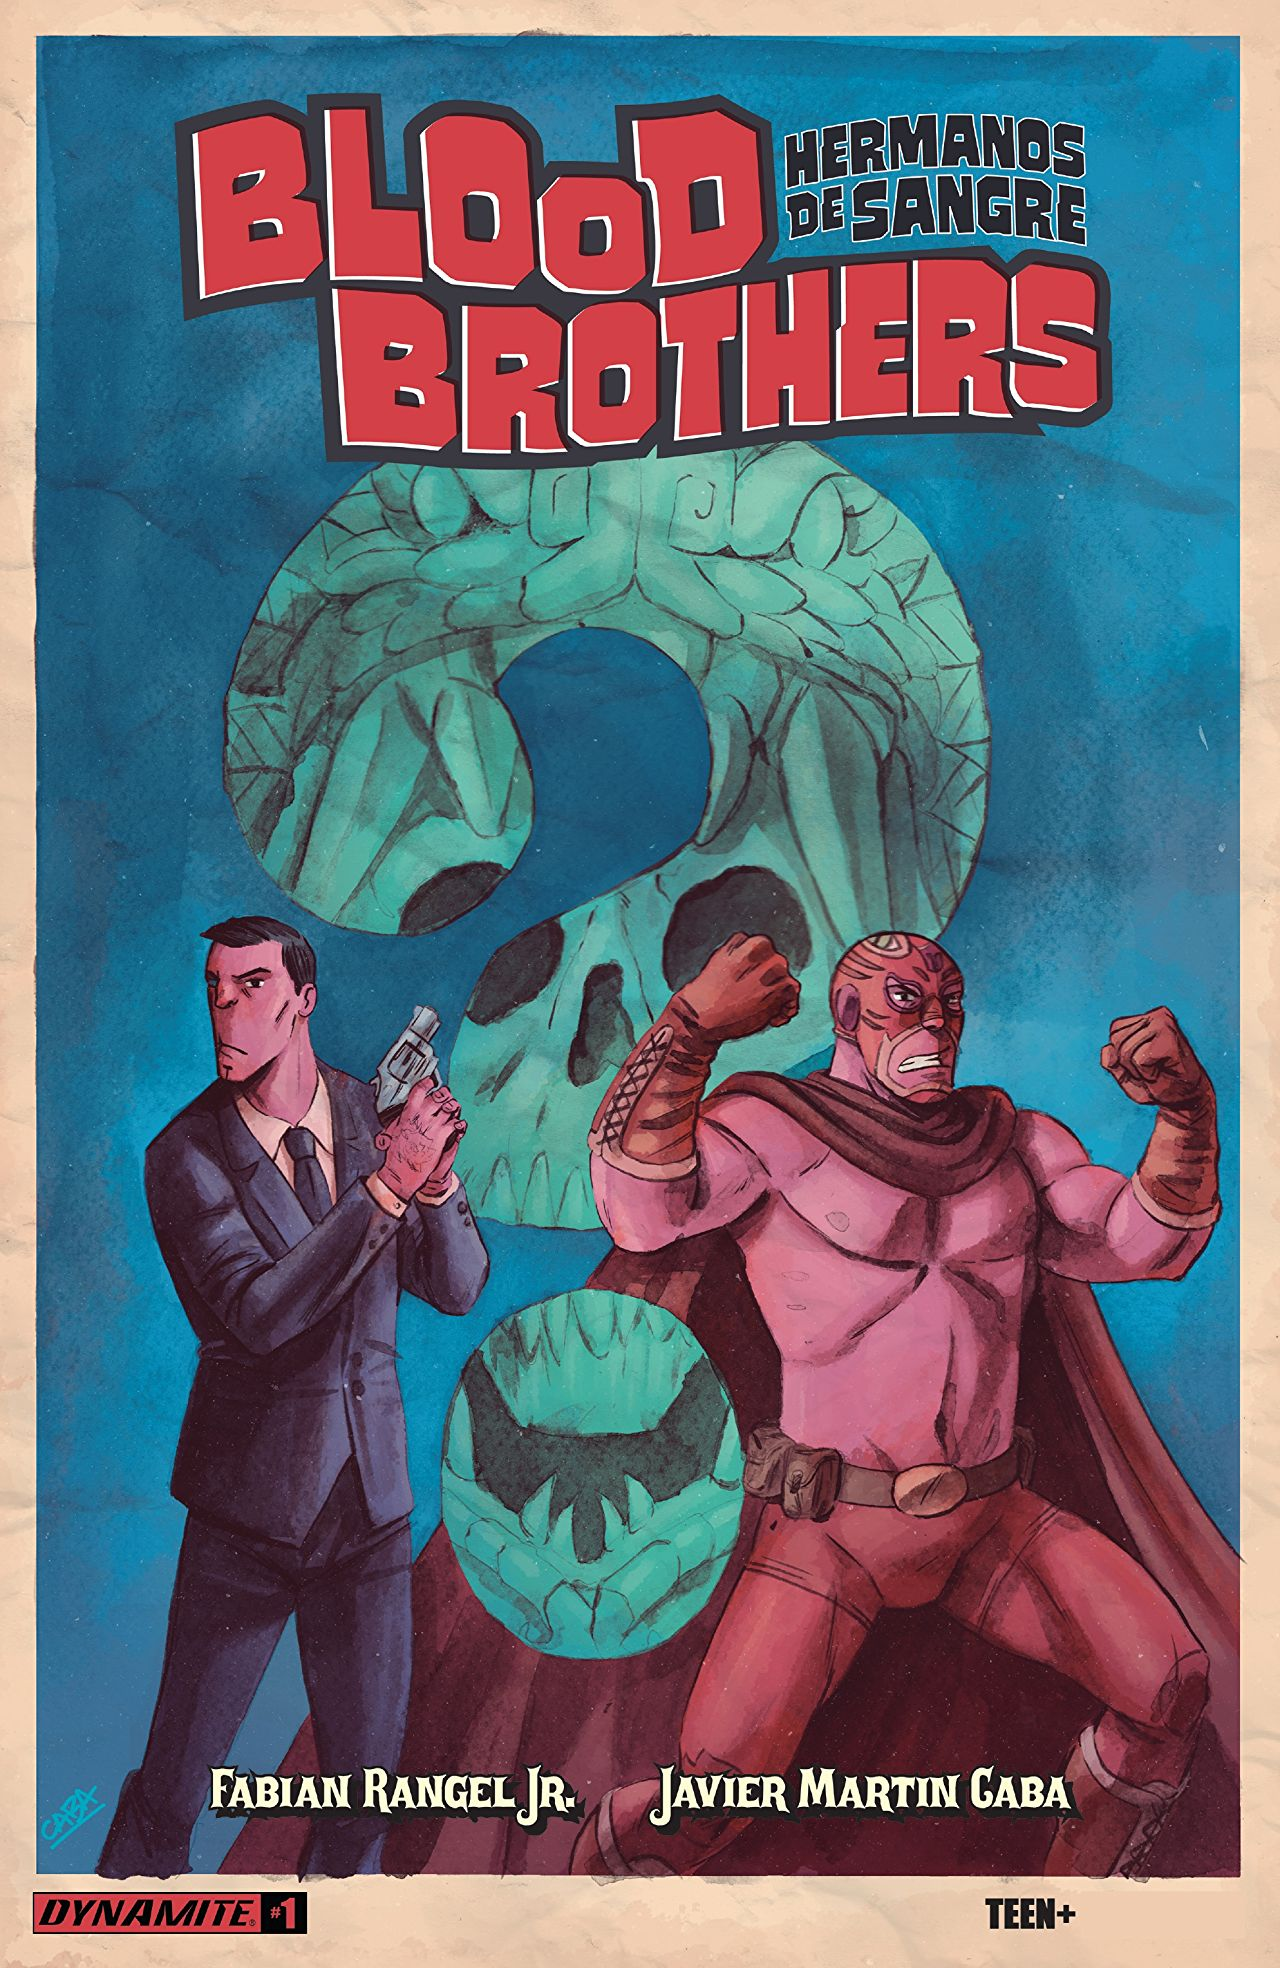 Two brothers, one a straitlaced looking cop and the other a luchador-looking superhero make up the eponymous Blood Brothers. A supernatural investigation is in store, but is it good? Based on the preview it looks damn good!